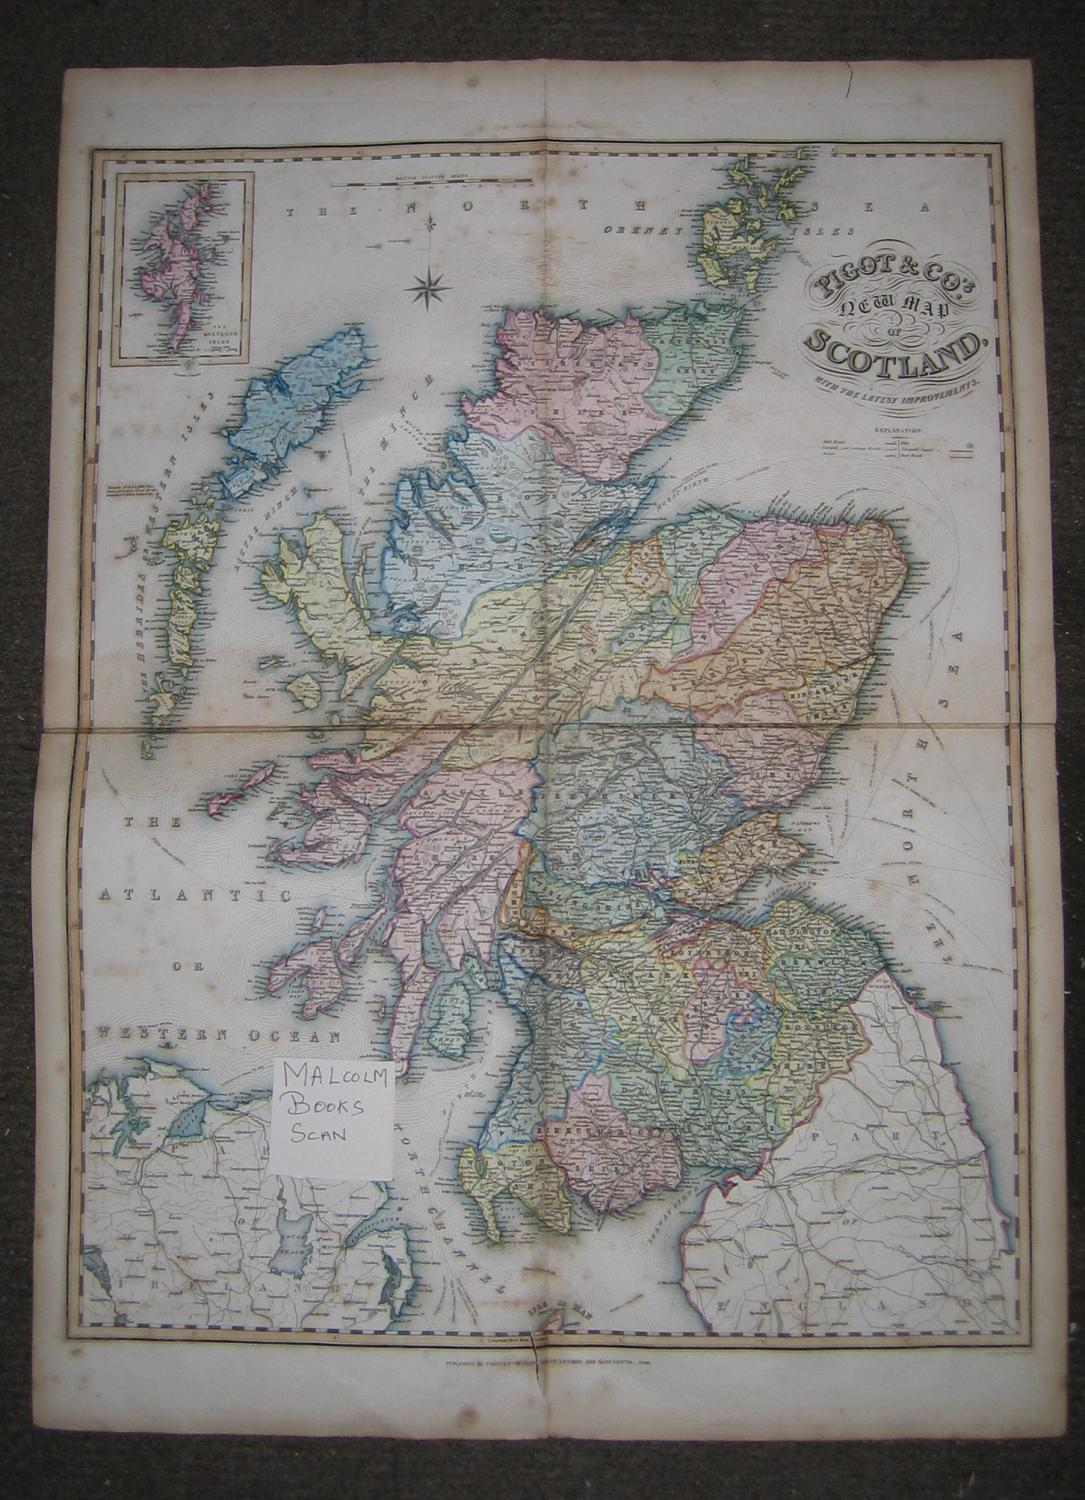 Pigot & Co's New Map of Scotland 1840 with the latest improvements (Including Mail Roads, Turnpike & Carriage Roads, Rivers, Hills, Navigable Canals